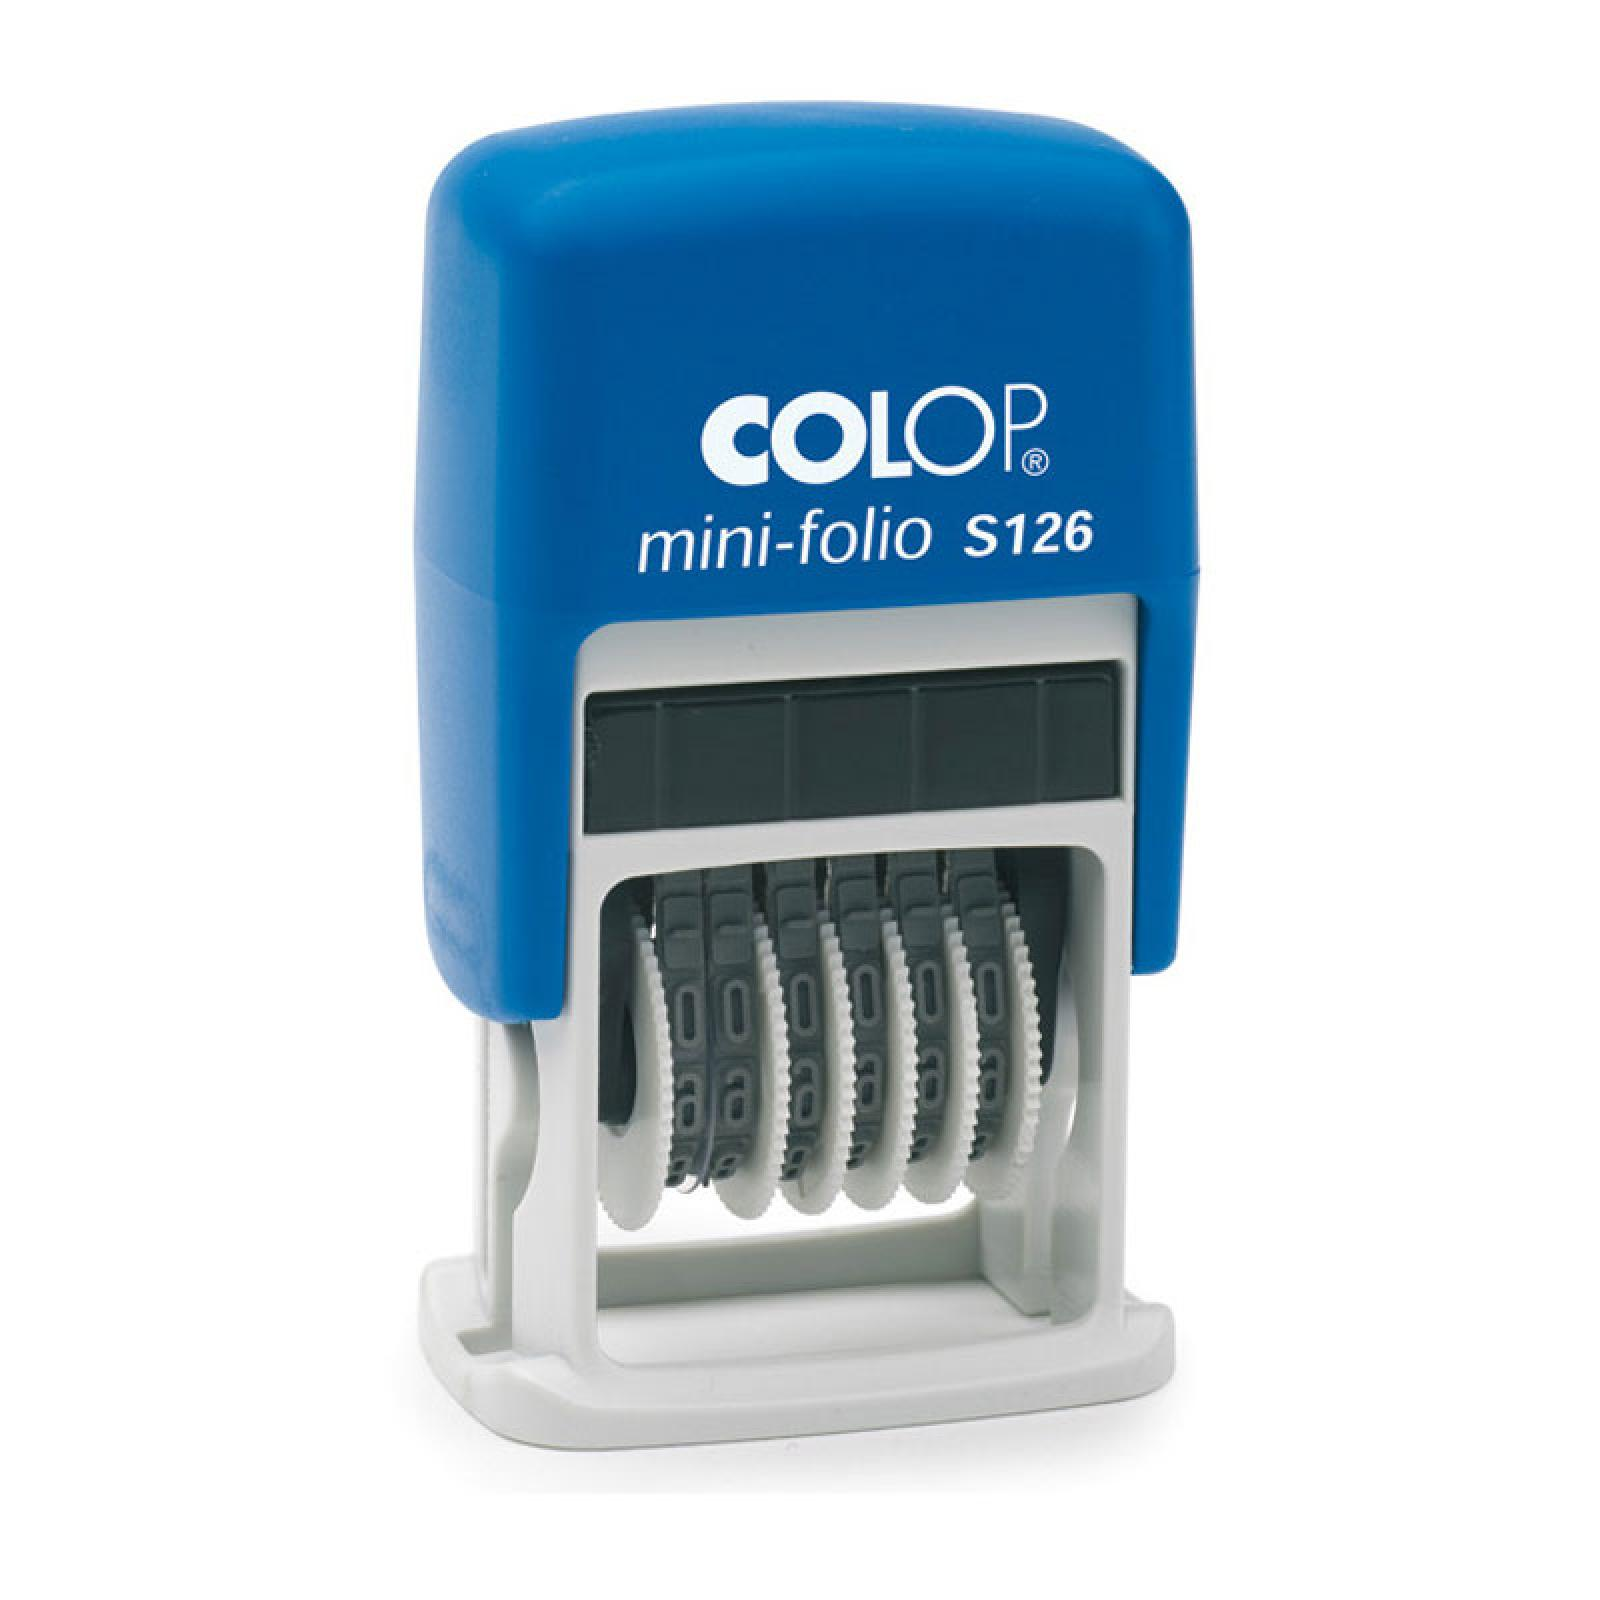 Stampila Colop Cifriera Mini-Folio S126